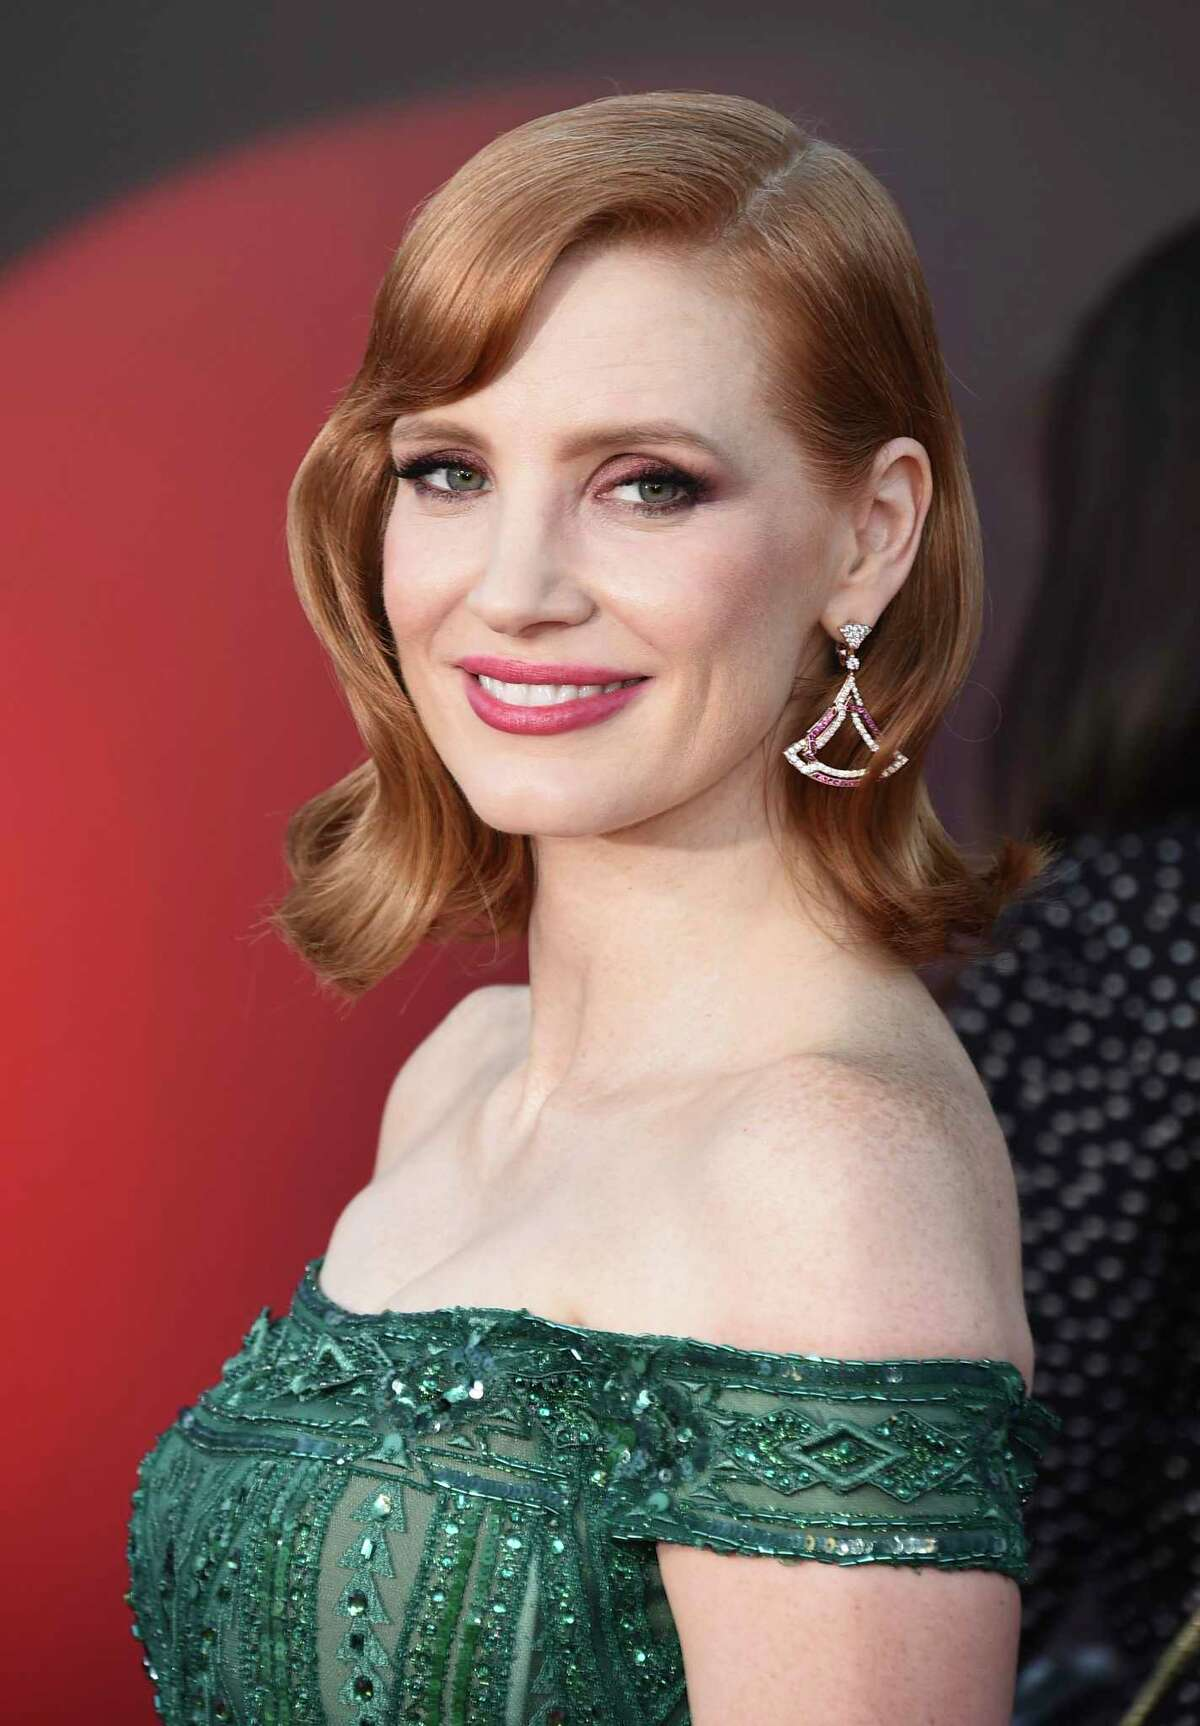 Jessica Chastain arrives at the Regency Village Theatre in Los Angeles on Monday, August 26, 2019.